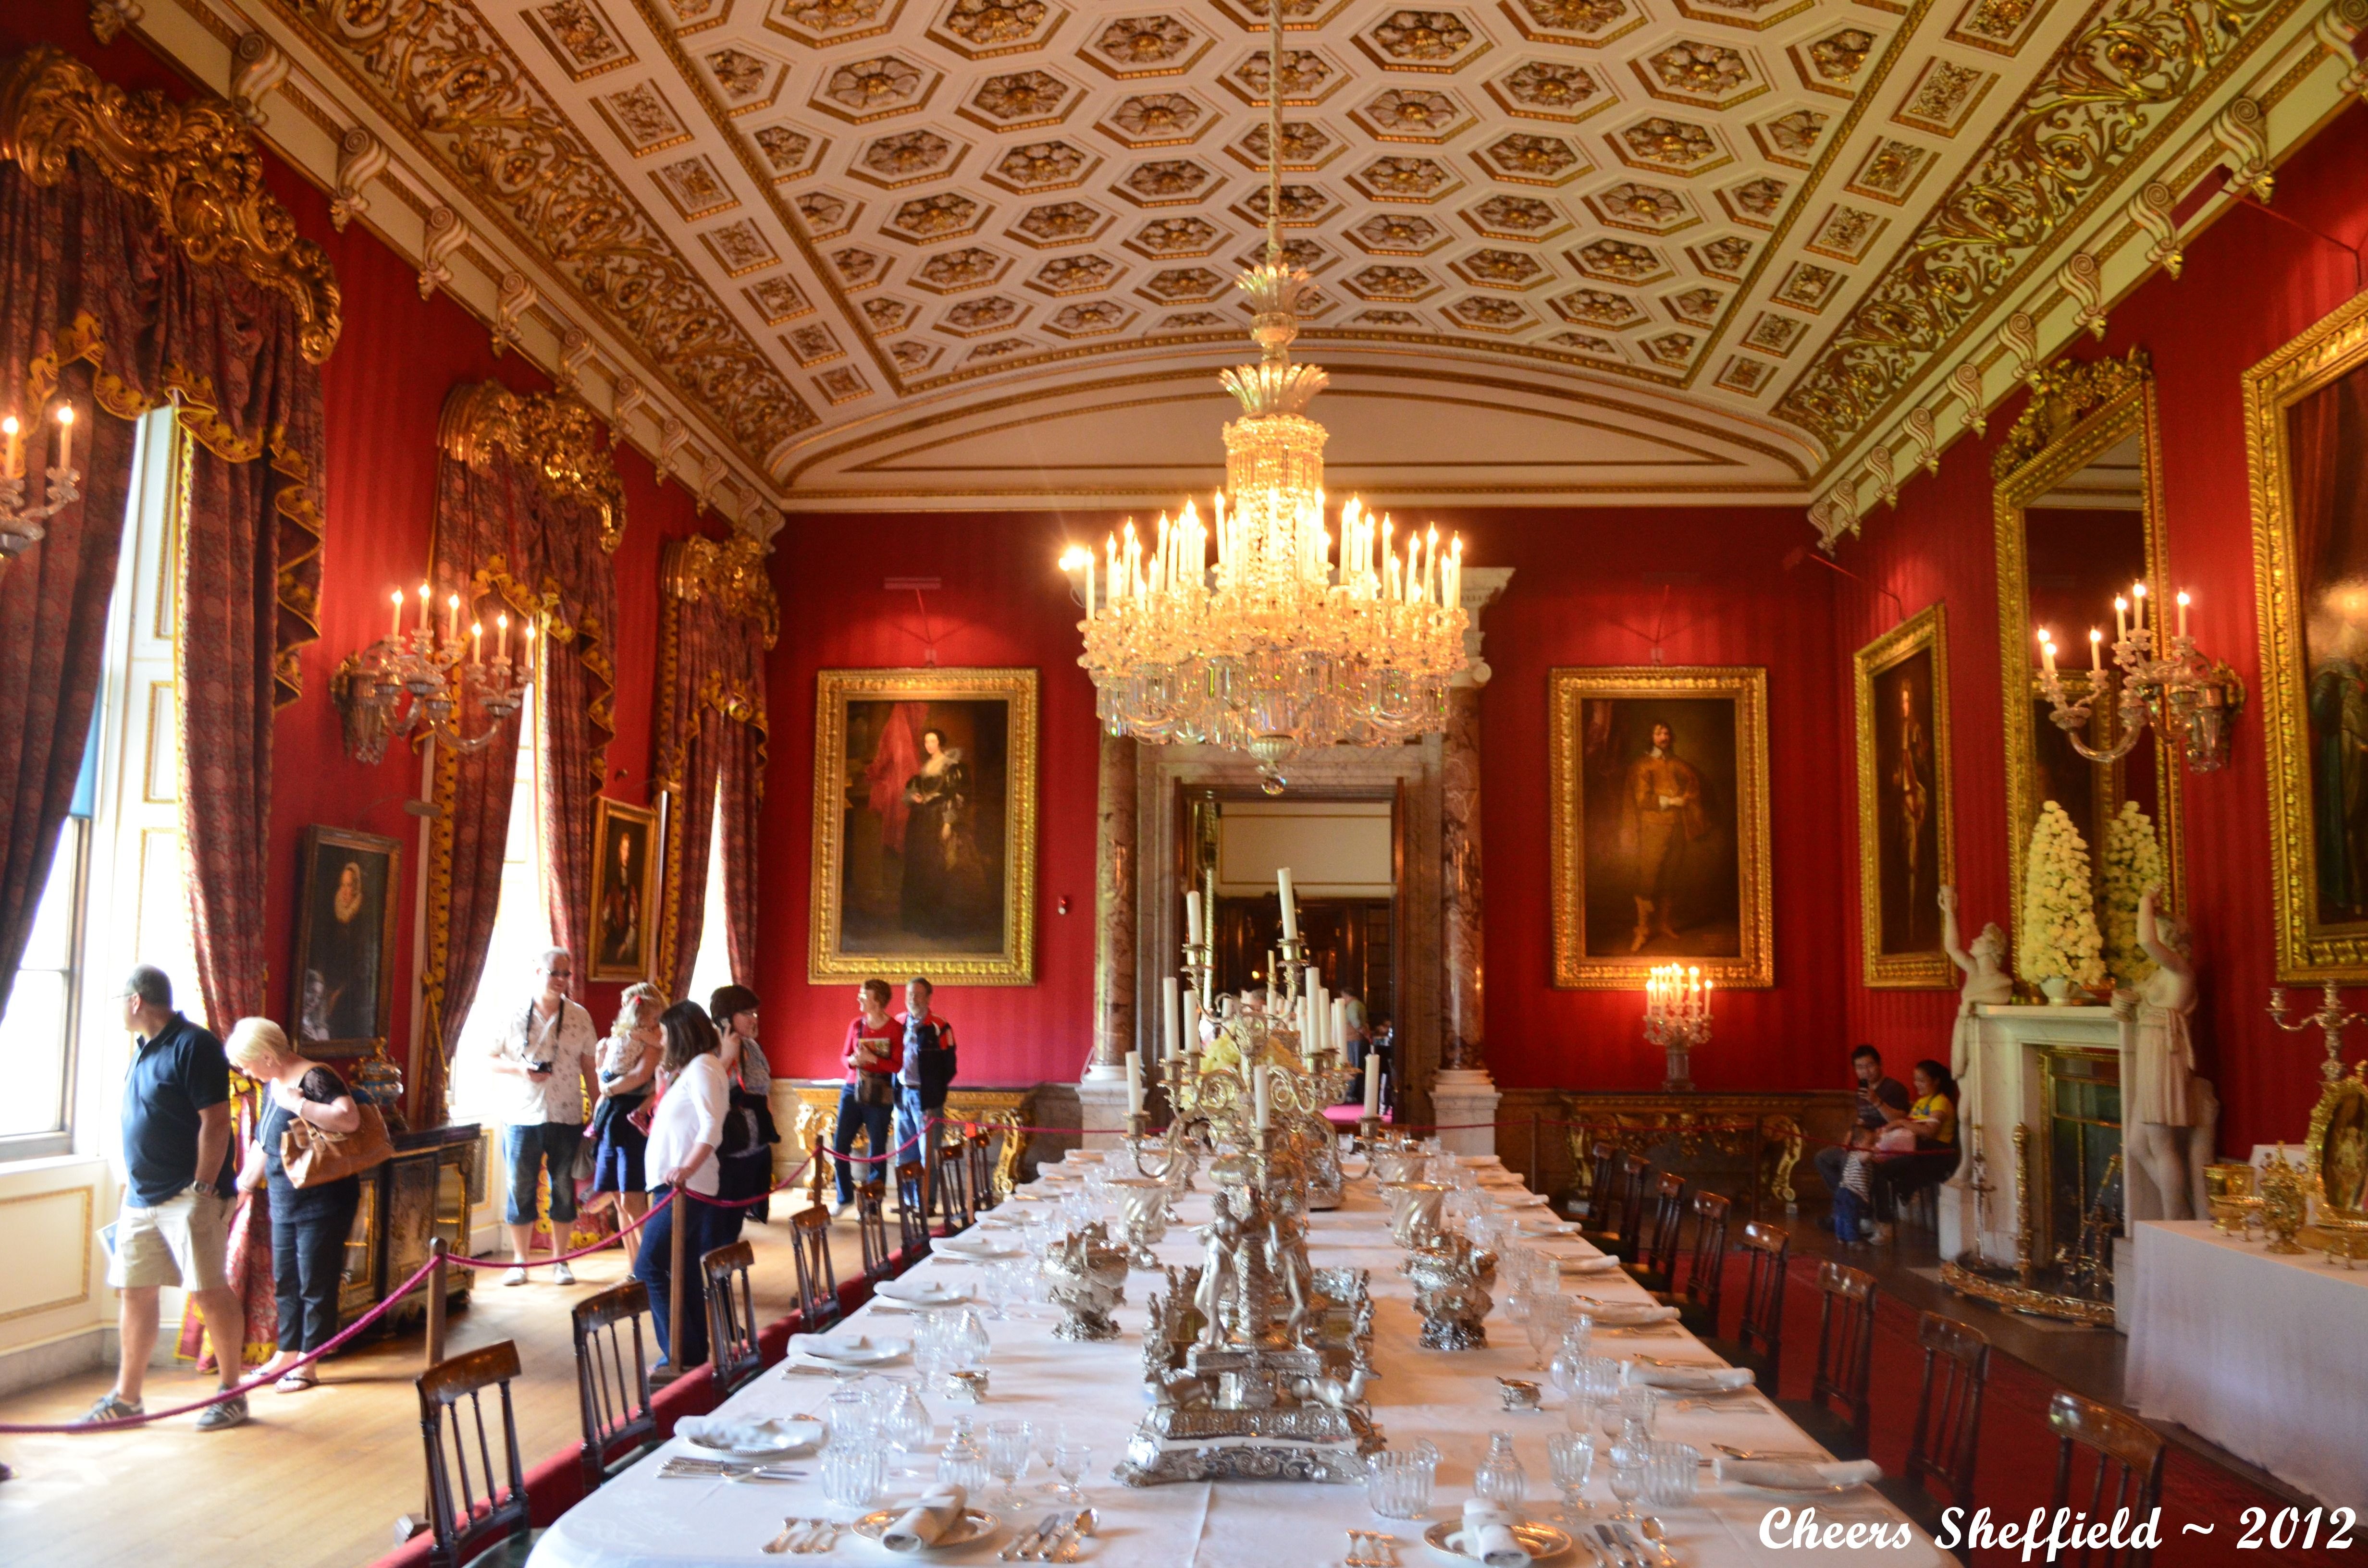 Castle howard interior 2 dining room steven feather flickr - Chatsworth House Interior Chatsworth House Sheffield Home To The Dukes Of Devonshire